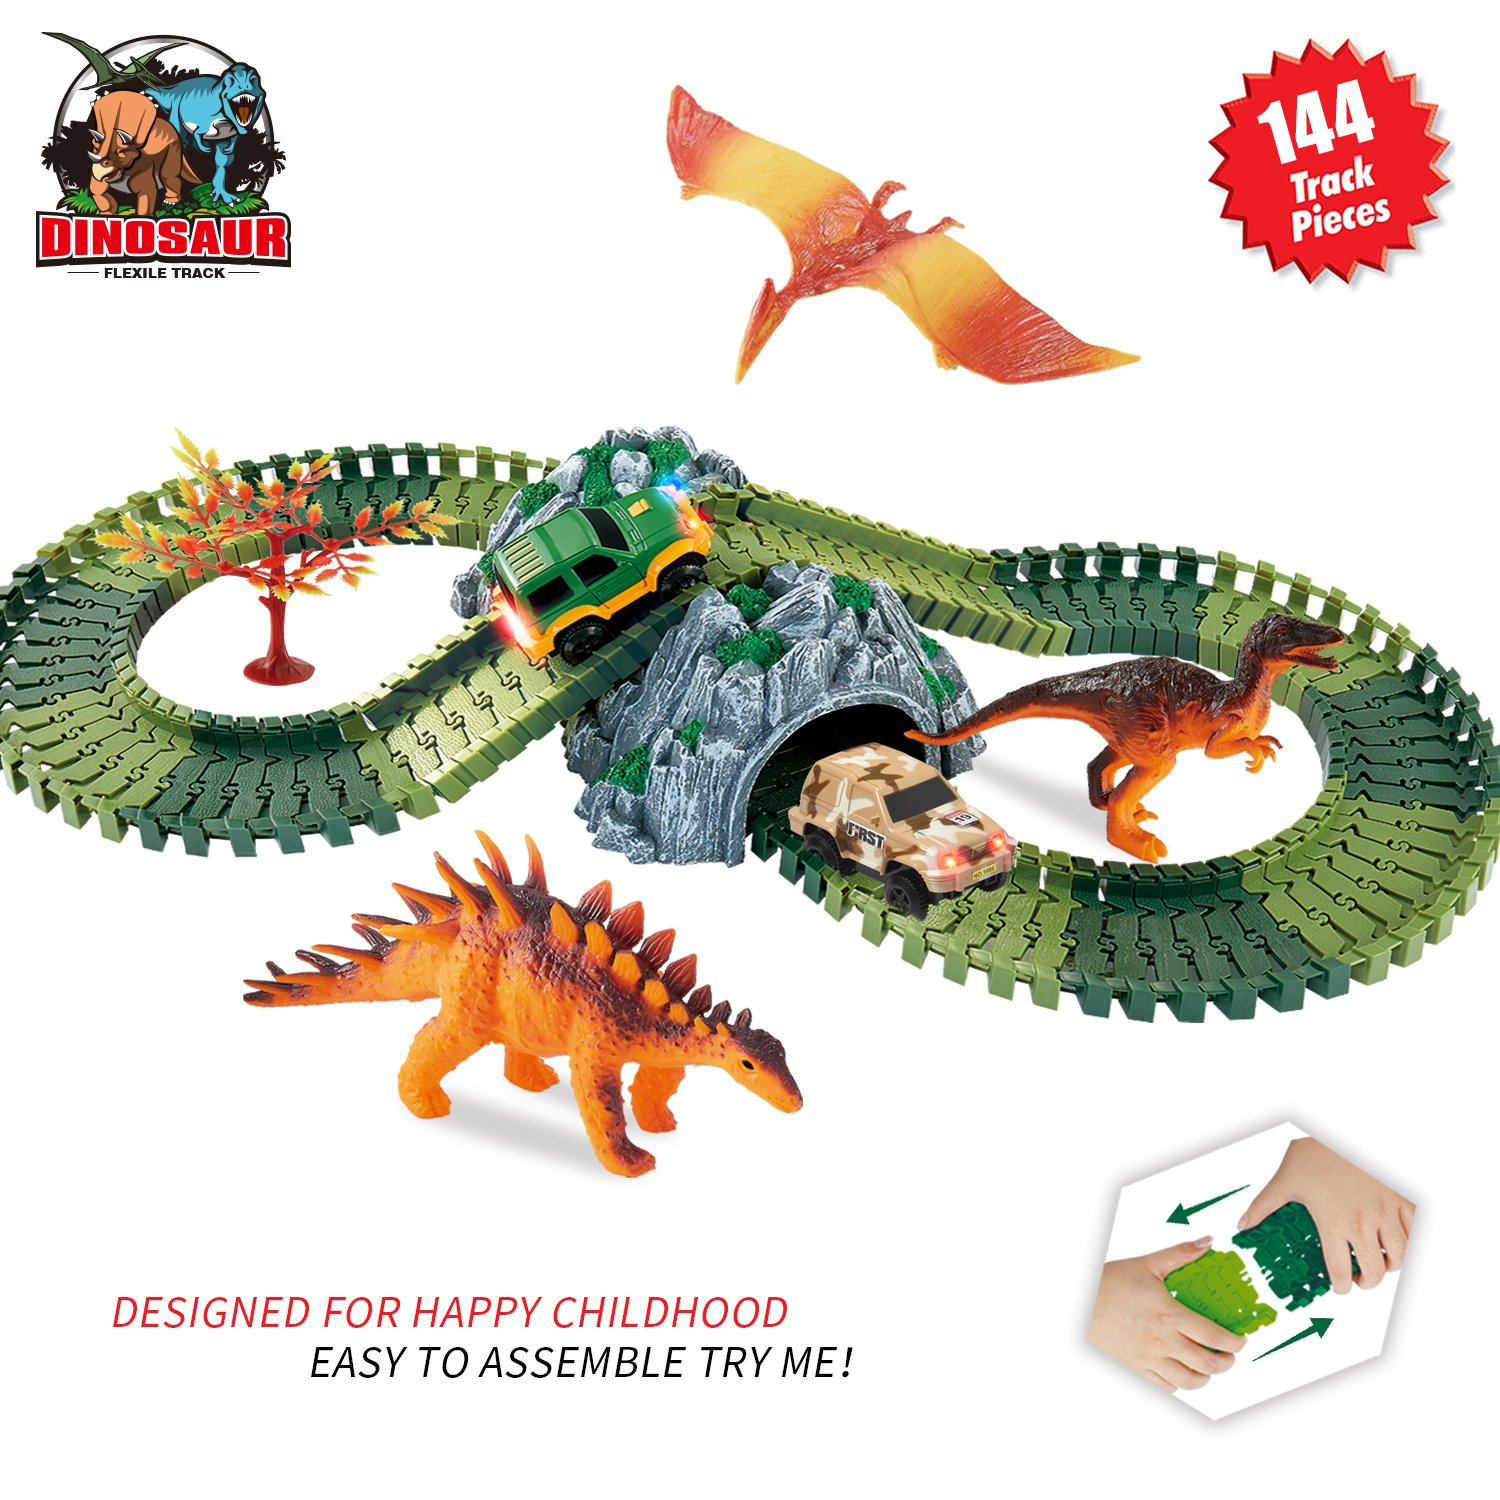 HOMOFY Dinosaur Toys Race Car Track Sets Jurassic World with 144 Pcs Flexible Tracks, 3 Dinosaurs,2 Led Cars,1 Tree and 2 In 1 Tunnel for 1 2 3 4 Year Old Girls and Boys Best Gift